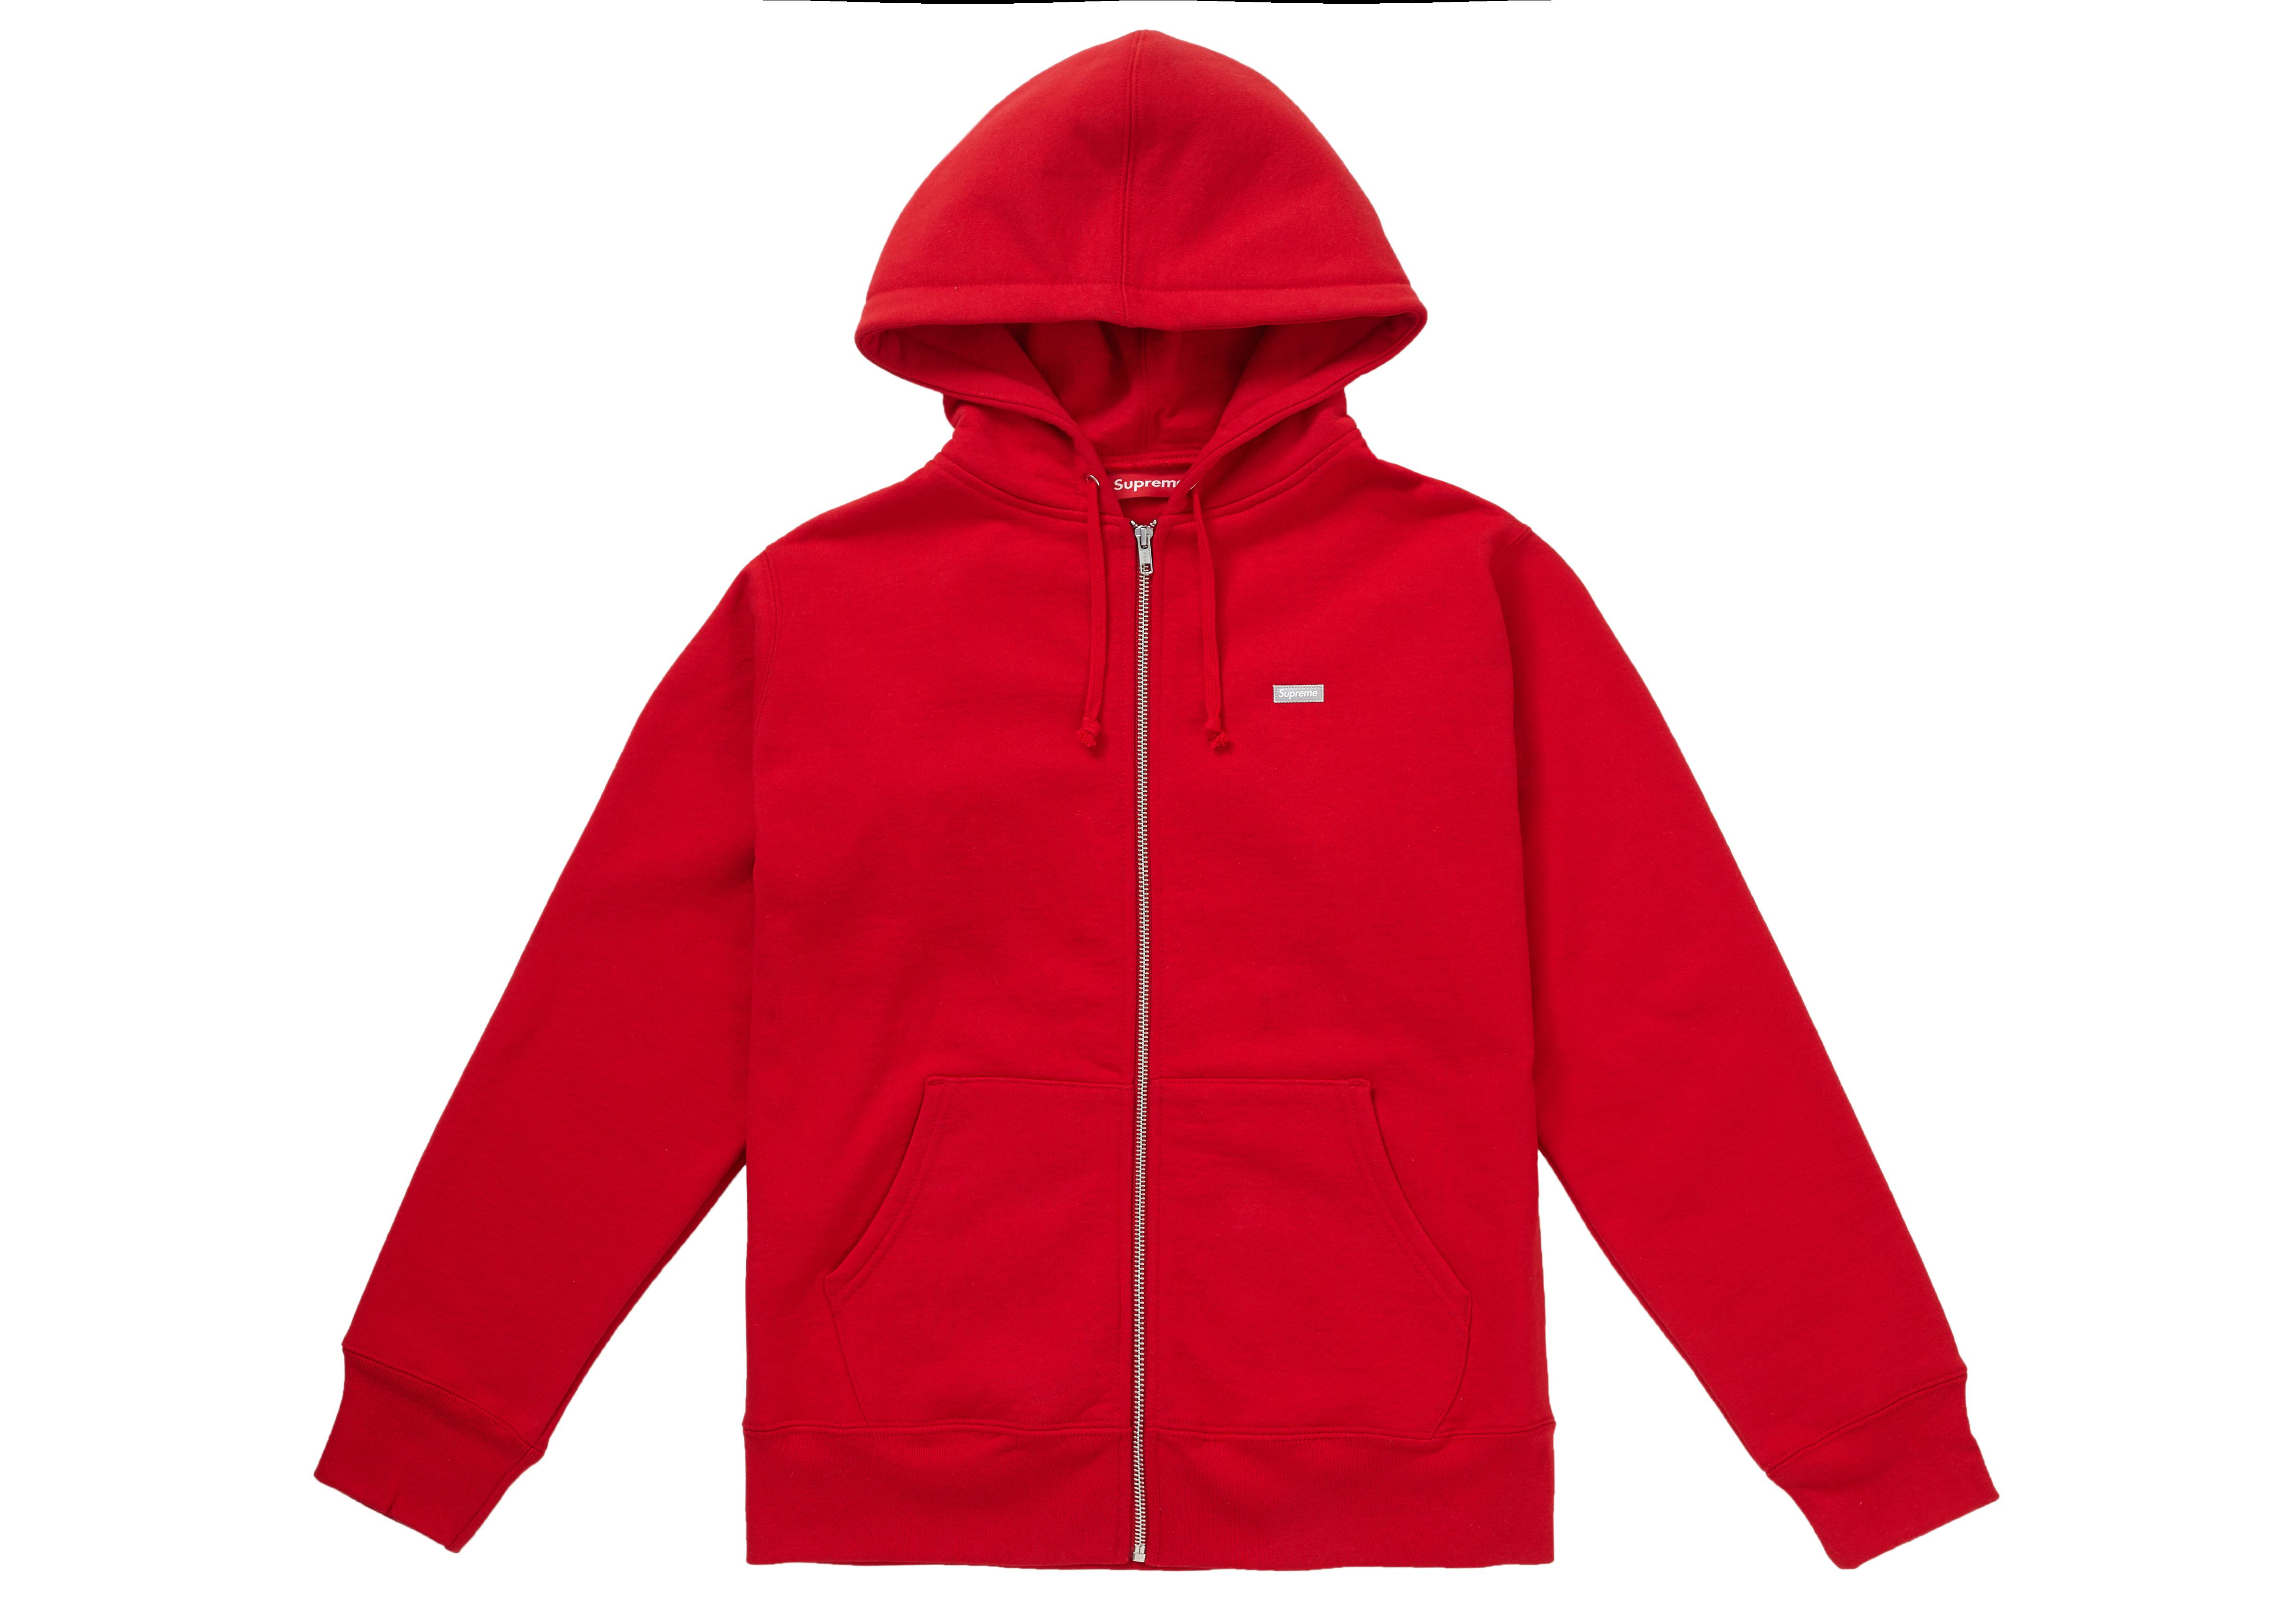 559ad9269559 Supreme - Reflective Small Box Zip Up Sweatshirt Red for Men - Lyst. View  fullscreen